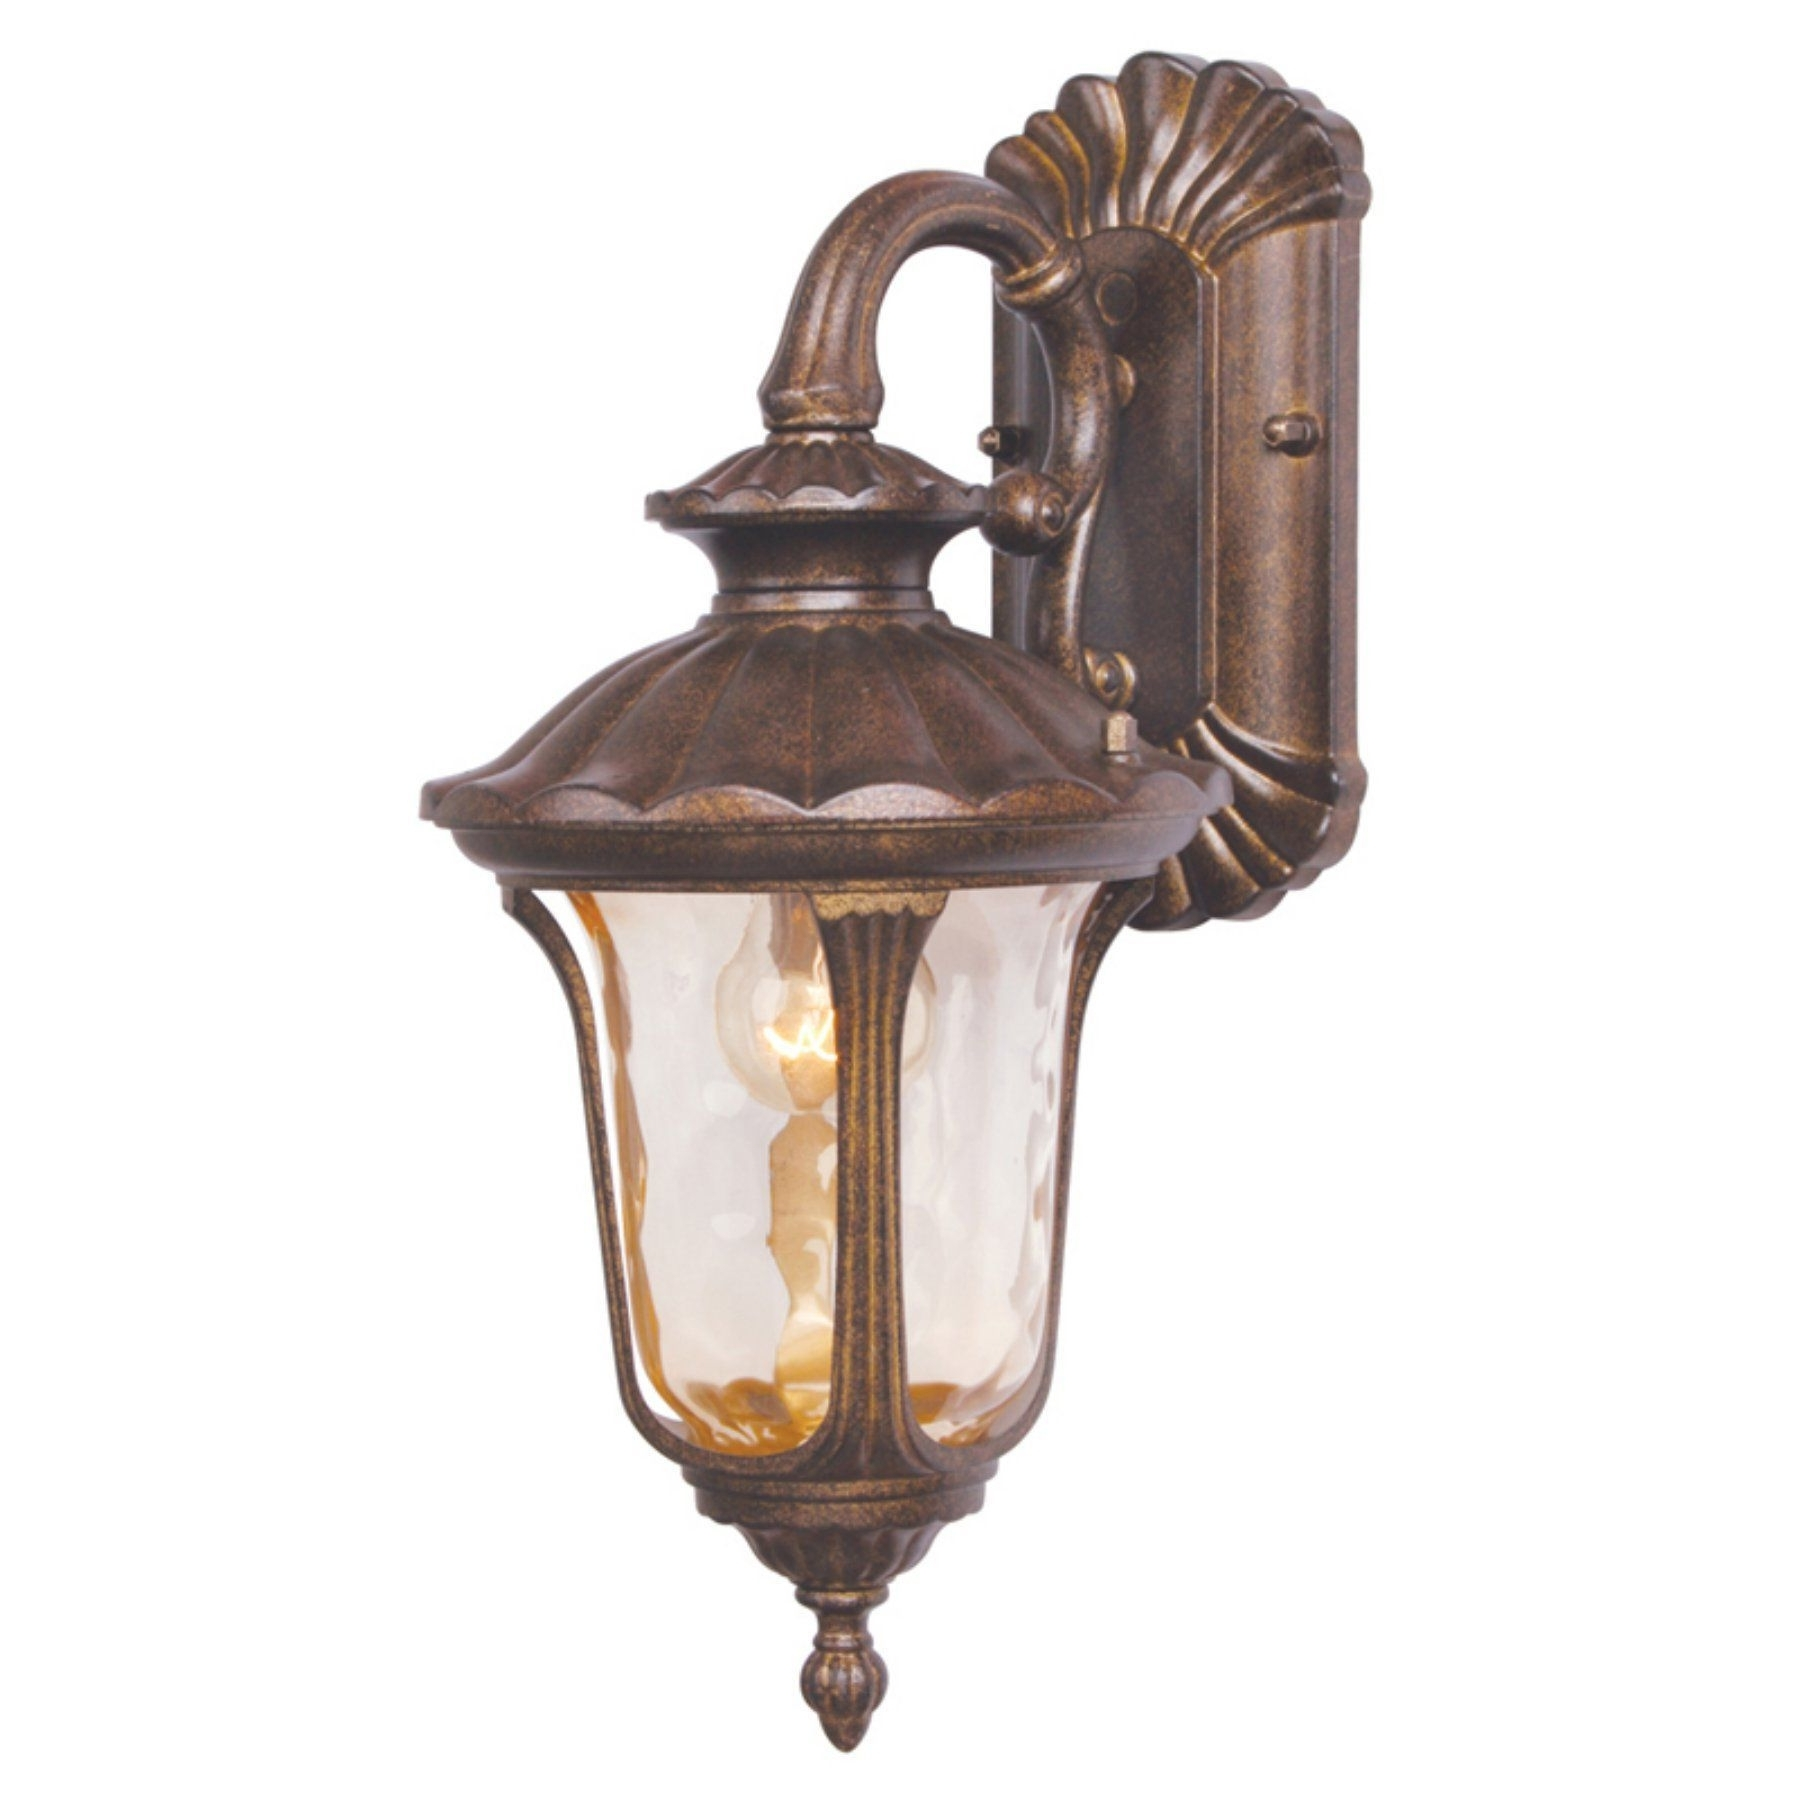 Livex Oxford 7651 50 Outdoor Hanging Wall Lantern –  (View 6 of 20)